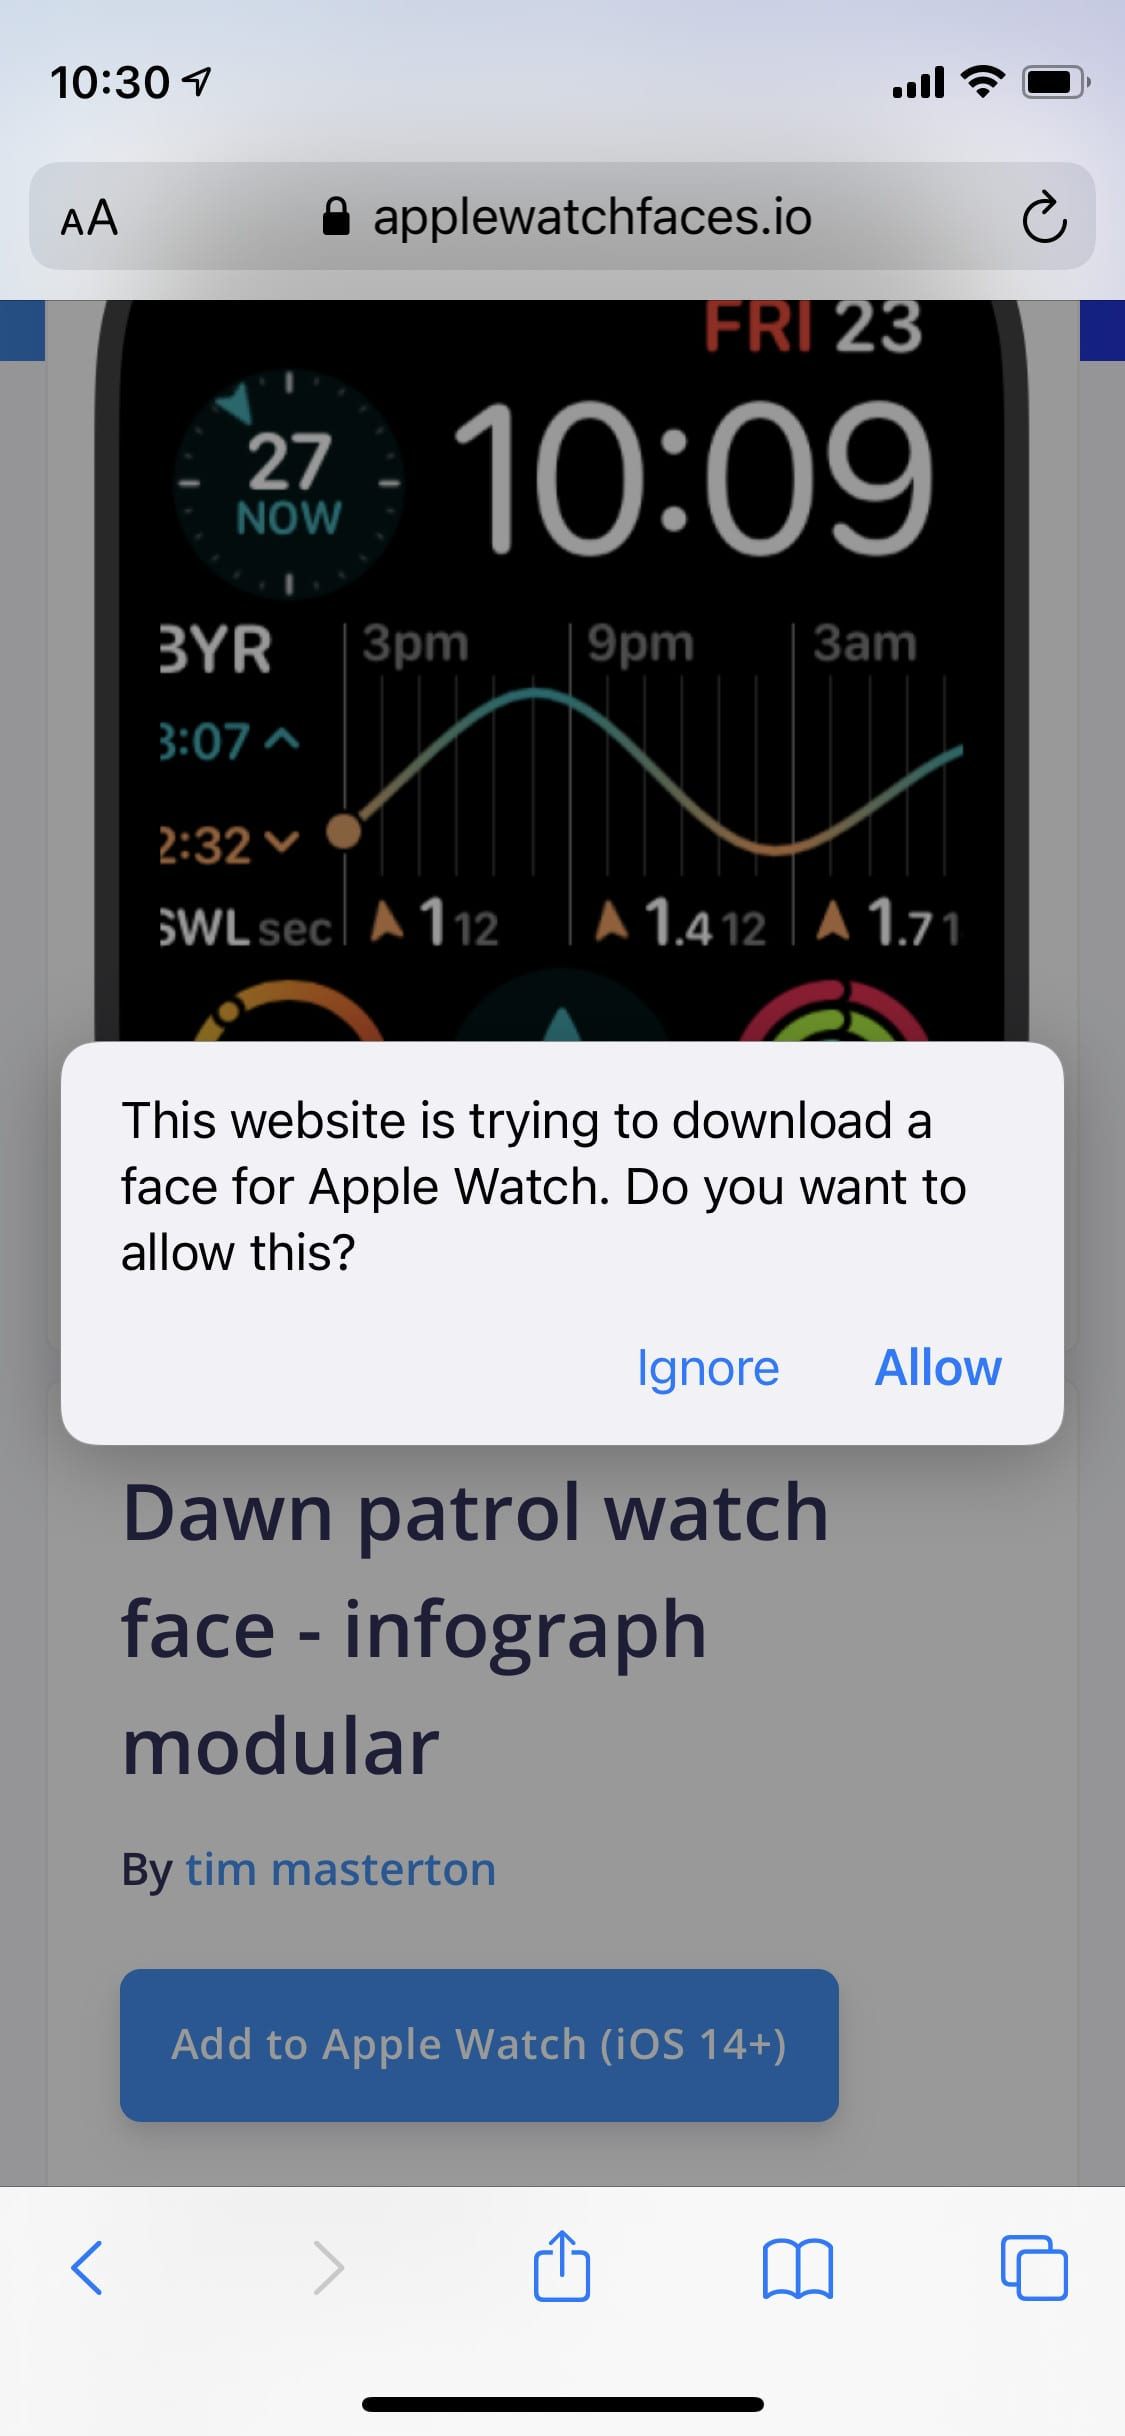 AppleWatchFaces.io asking for permission to open the Watch app.